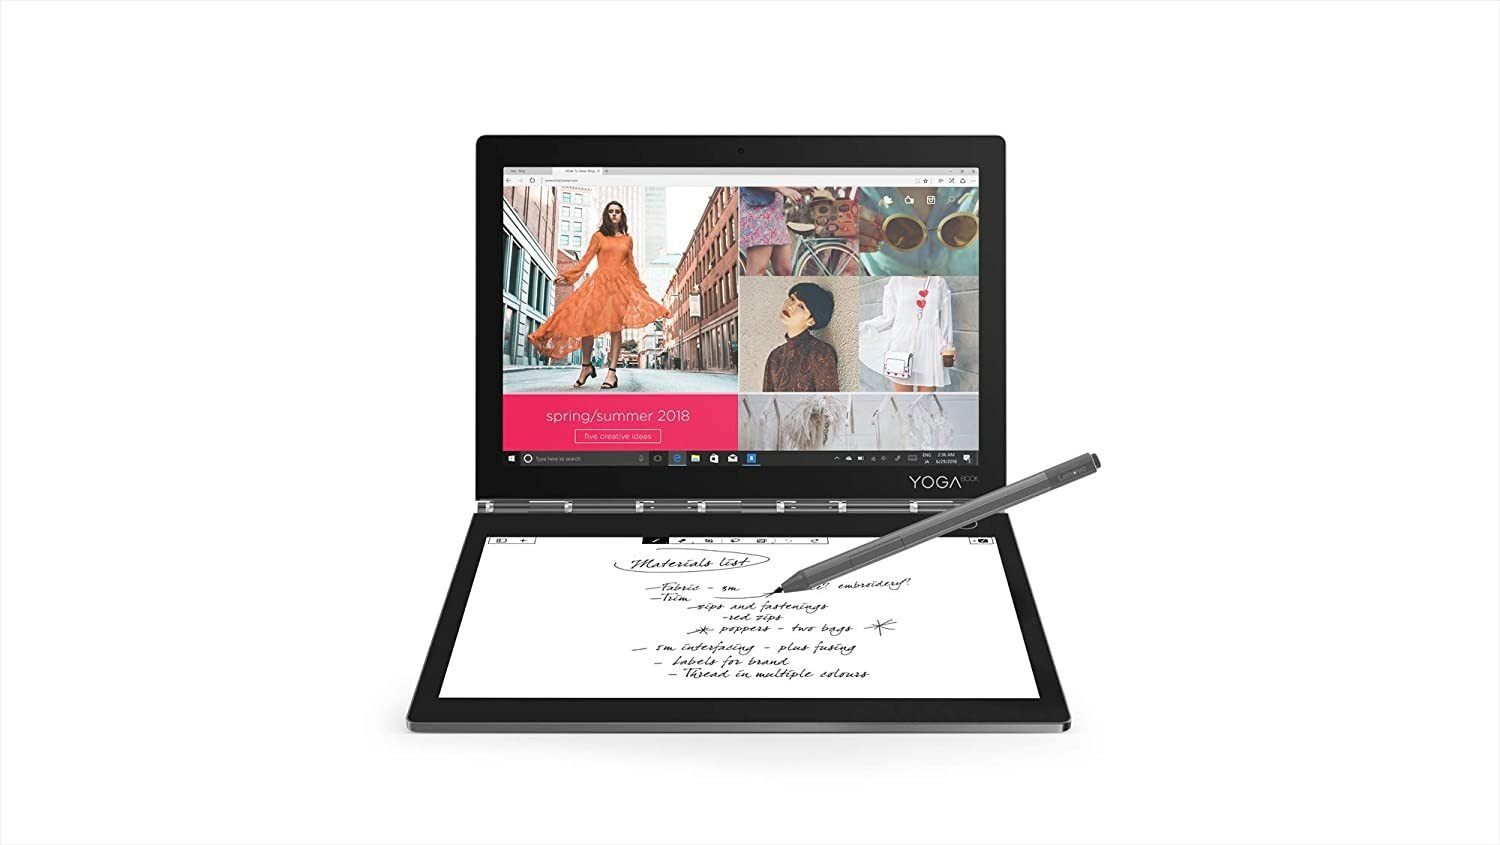 Lenovo YOGA BOOK C930 2-in-1 Tablet